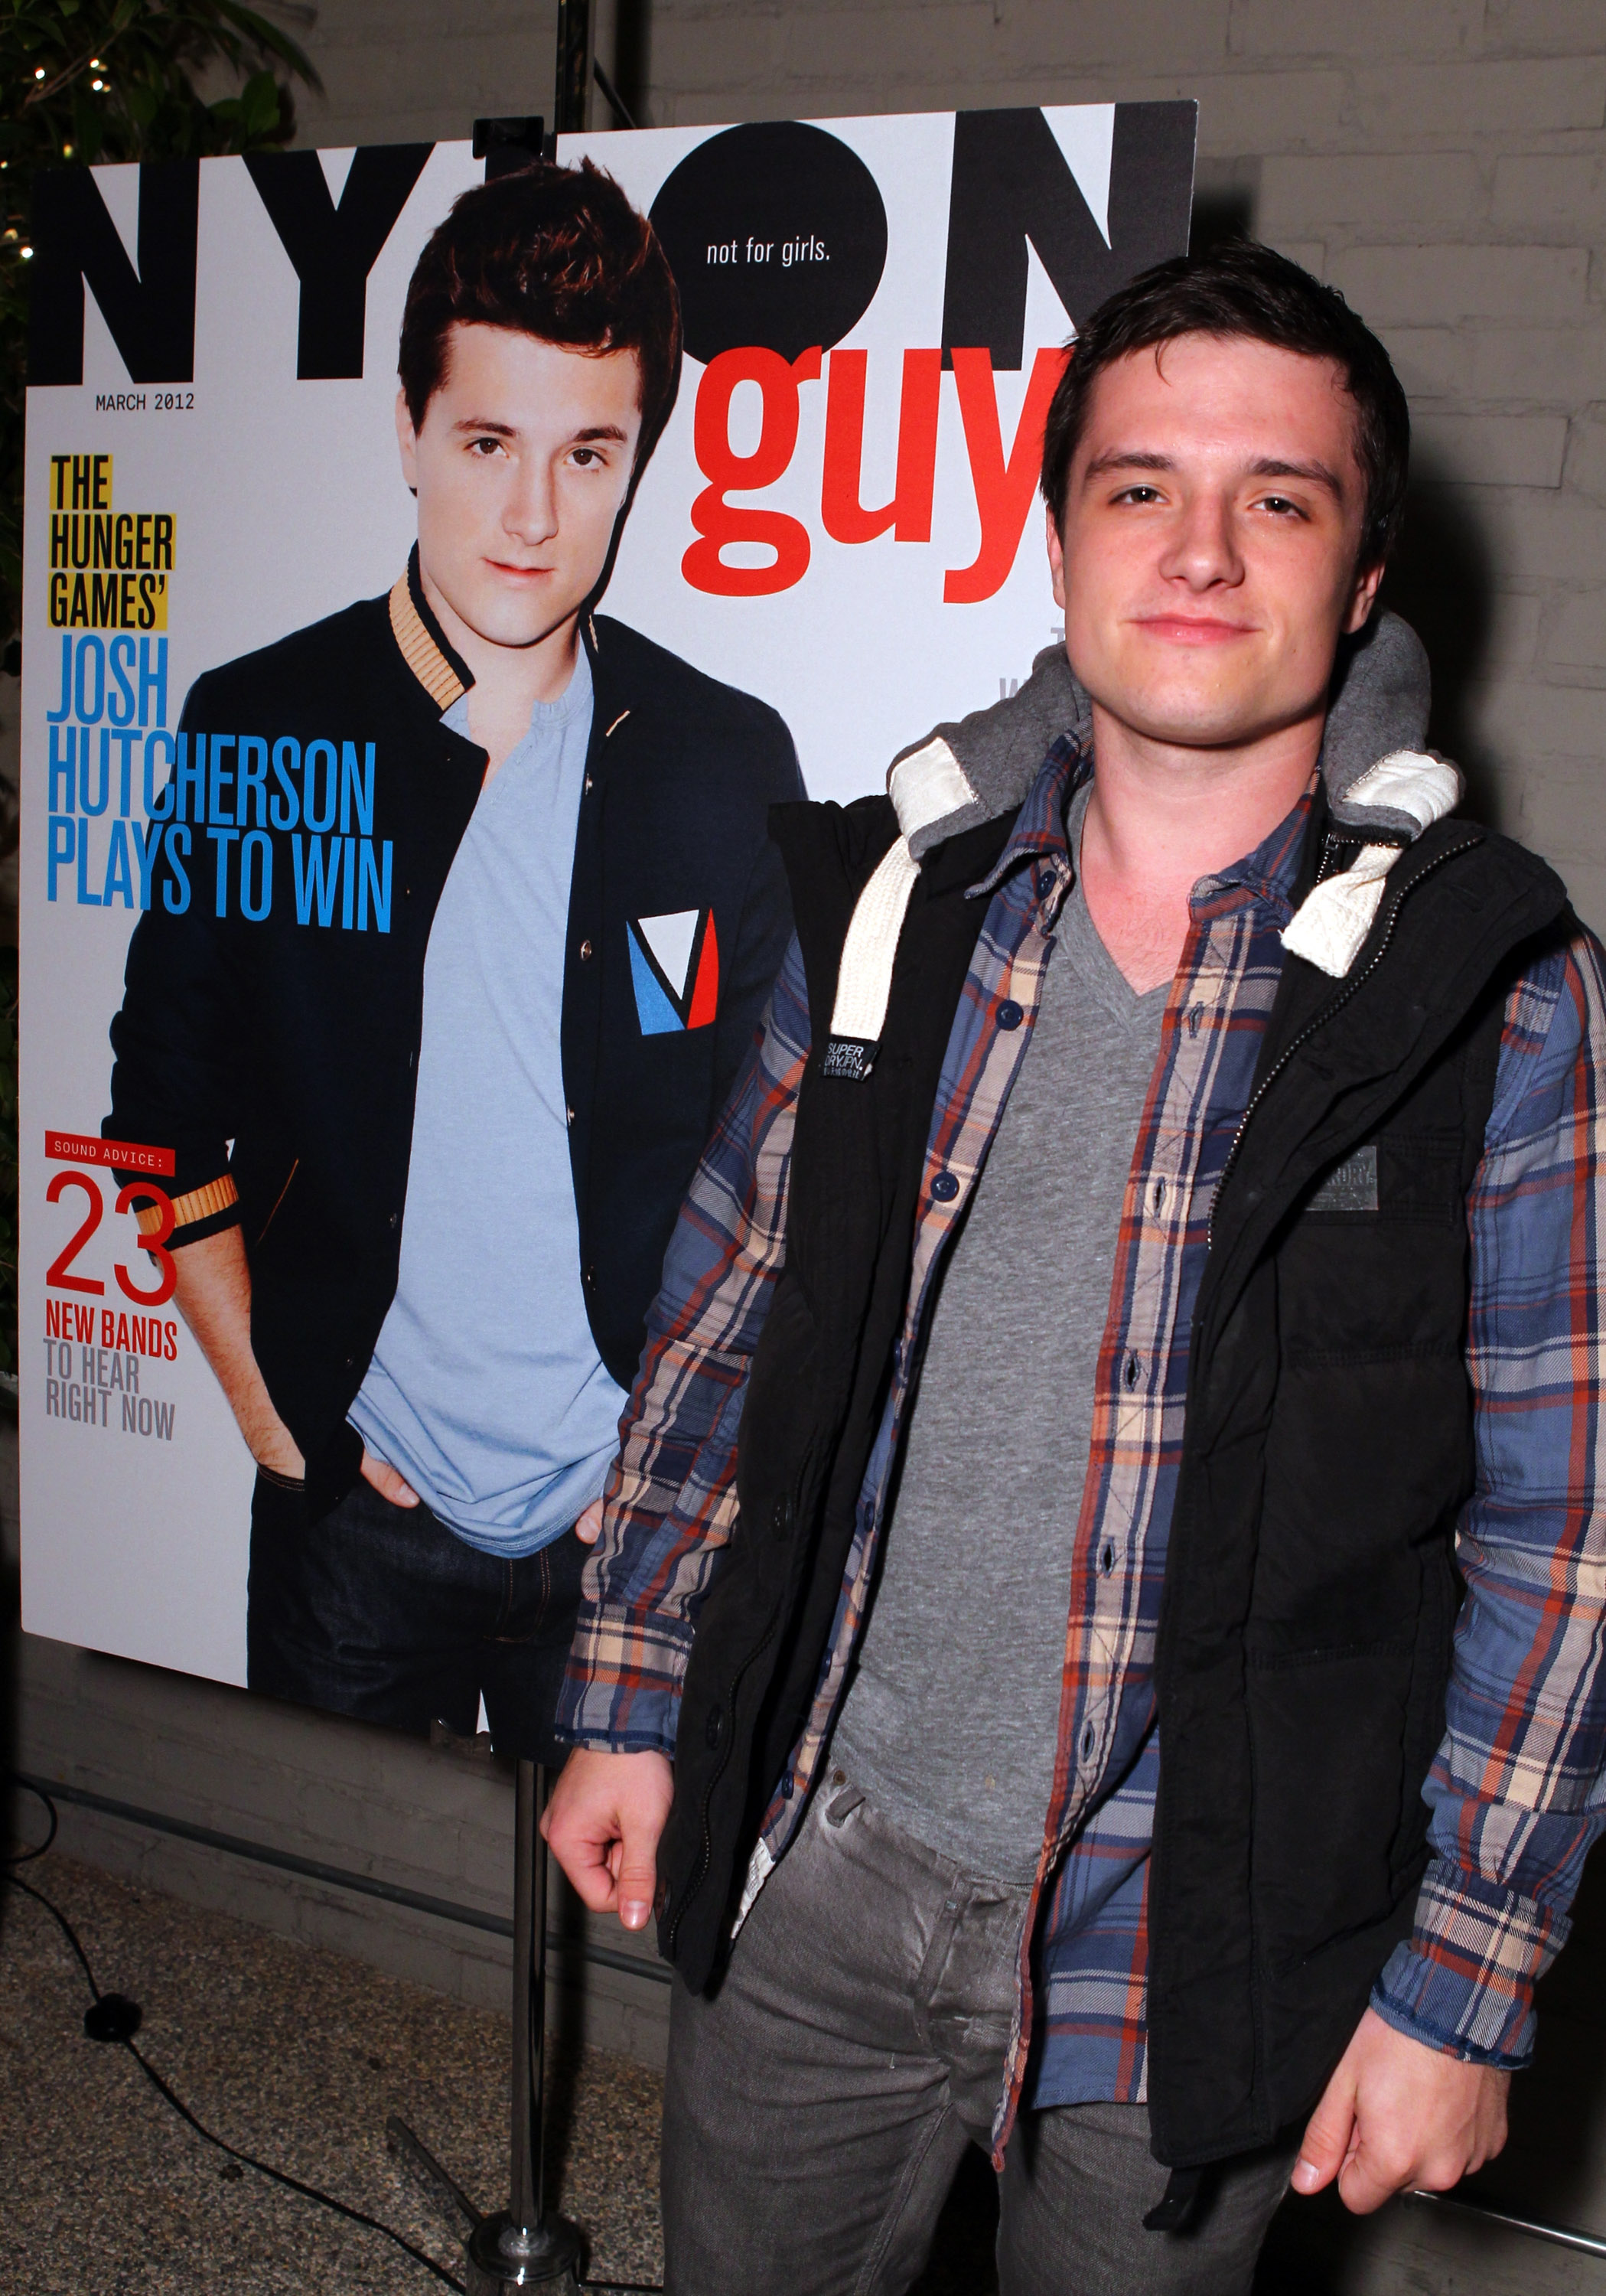 Josh Hutcherson talked to us about his favorite scene in The Hunger Games at his cover launch party.